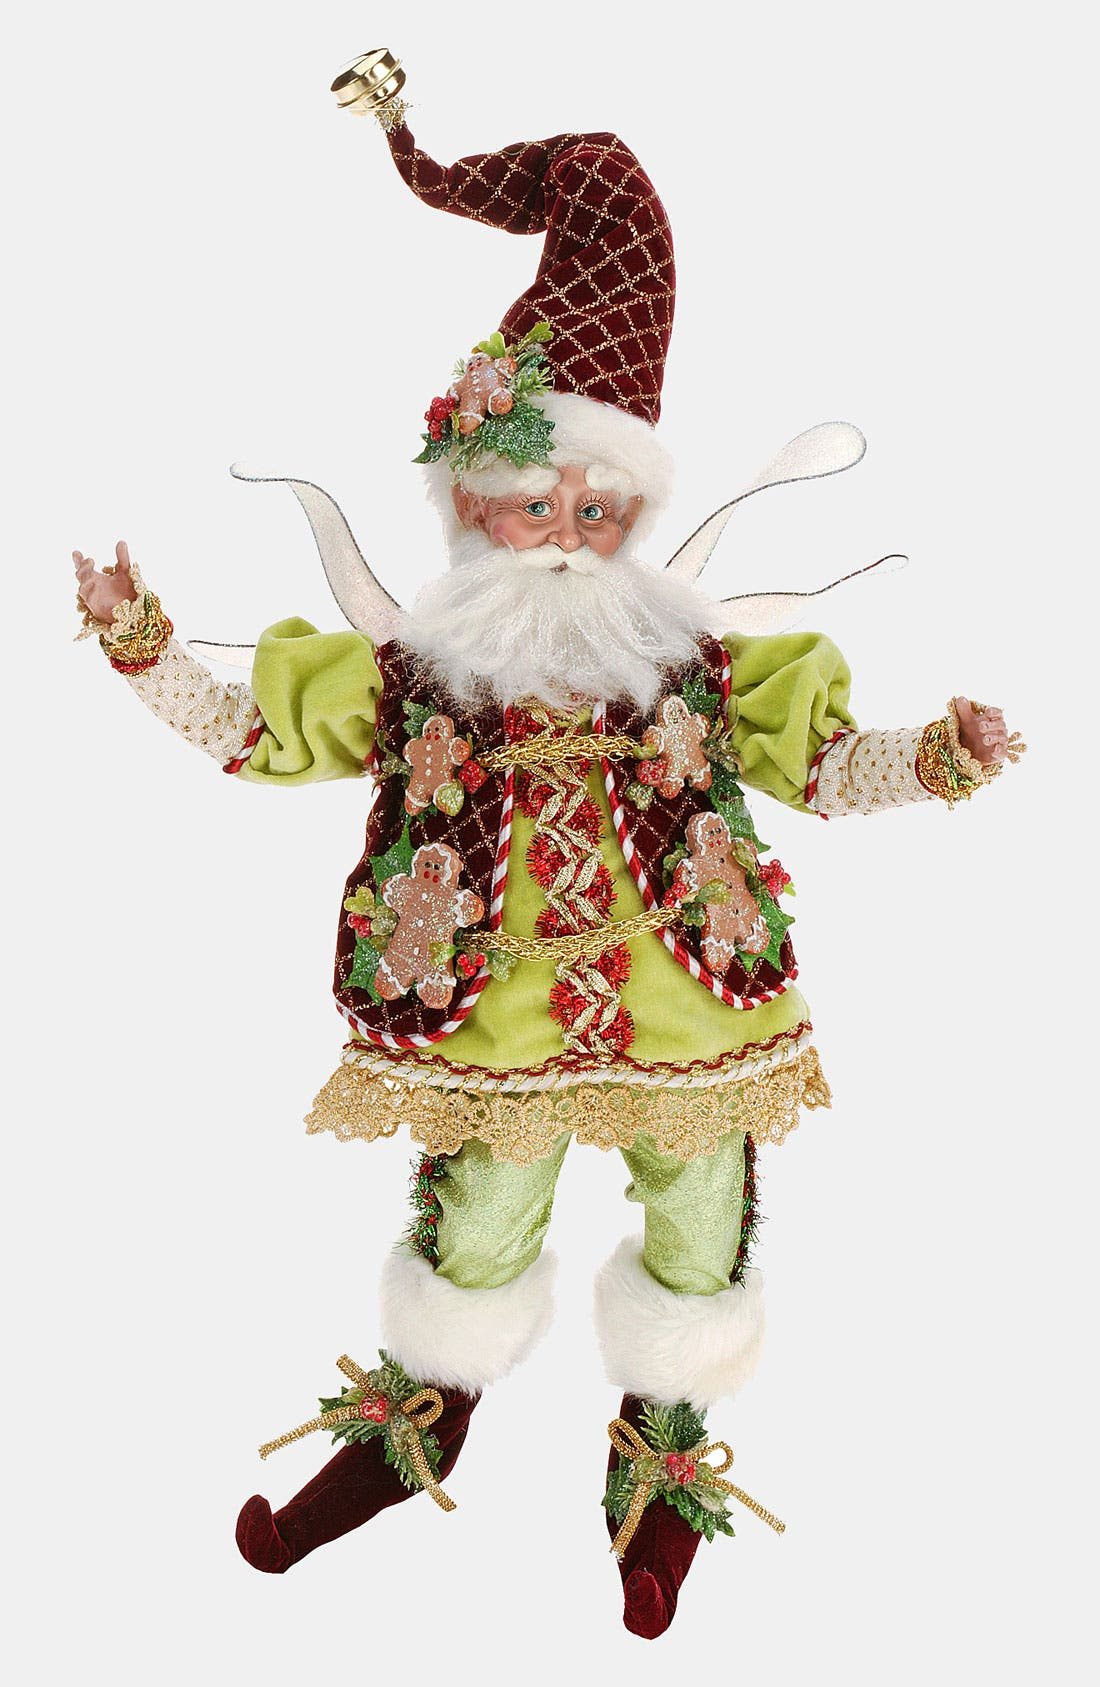 Alternate Image 1 Selected - Mark Roberts 'Gingerbread Fairy' Figurine (Limited Edition)